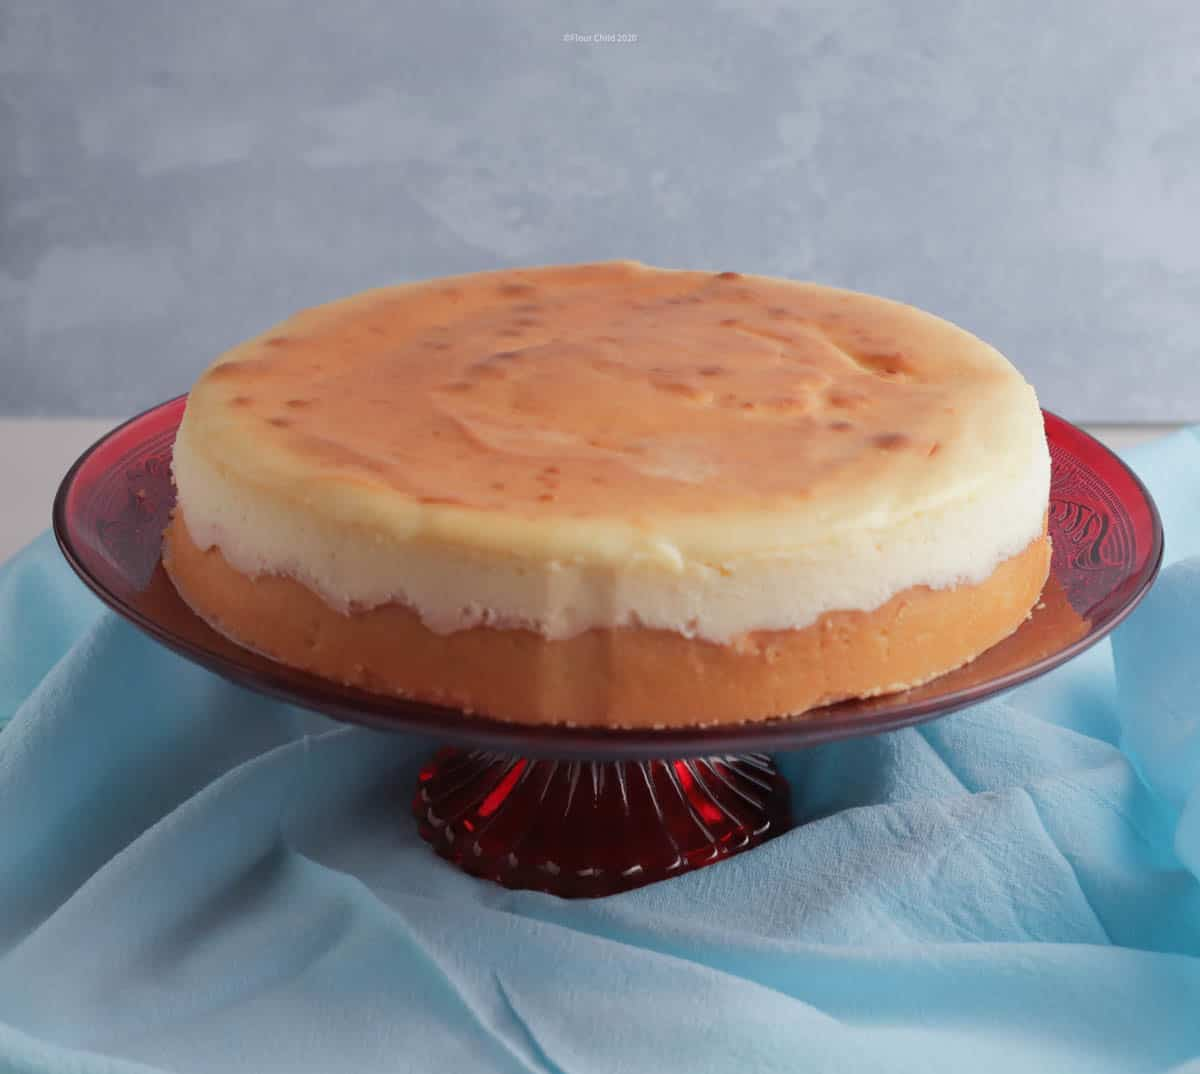 New York style cheesecake on a red pedestal cake stand